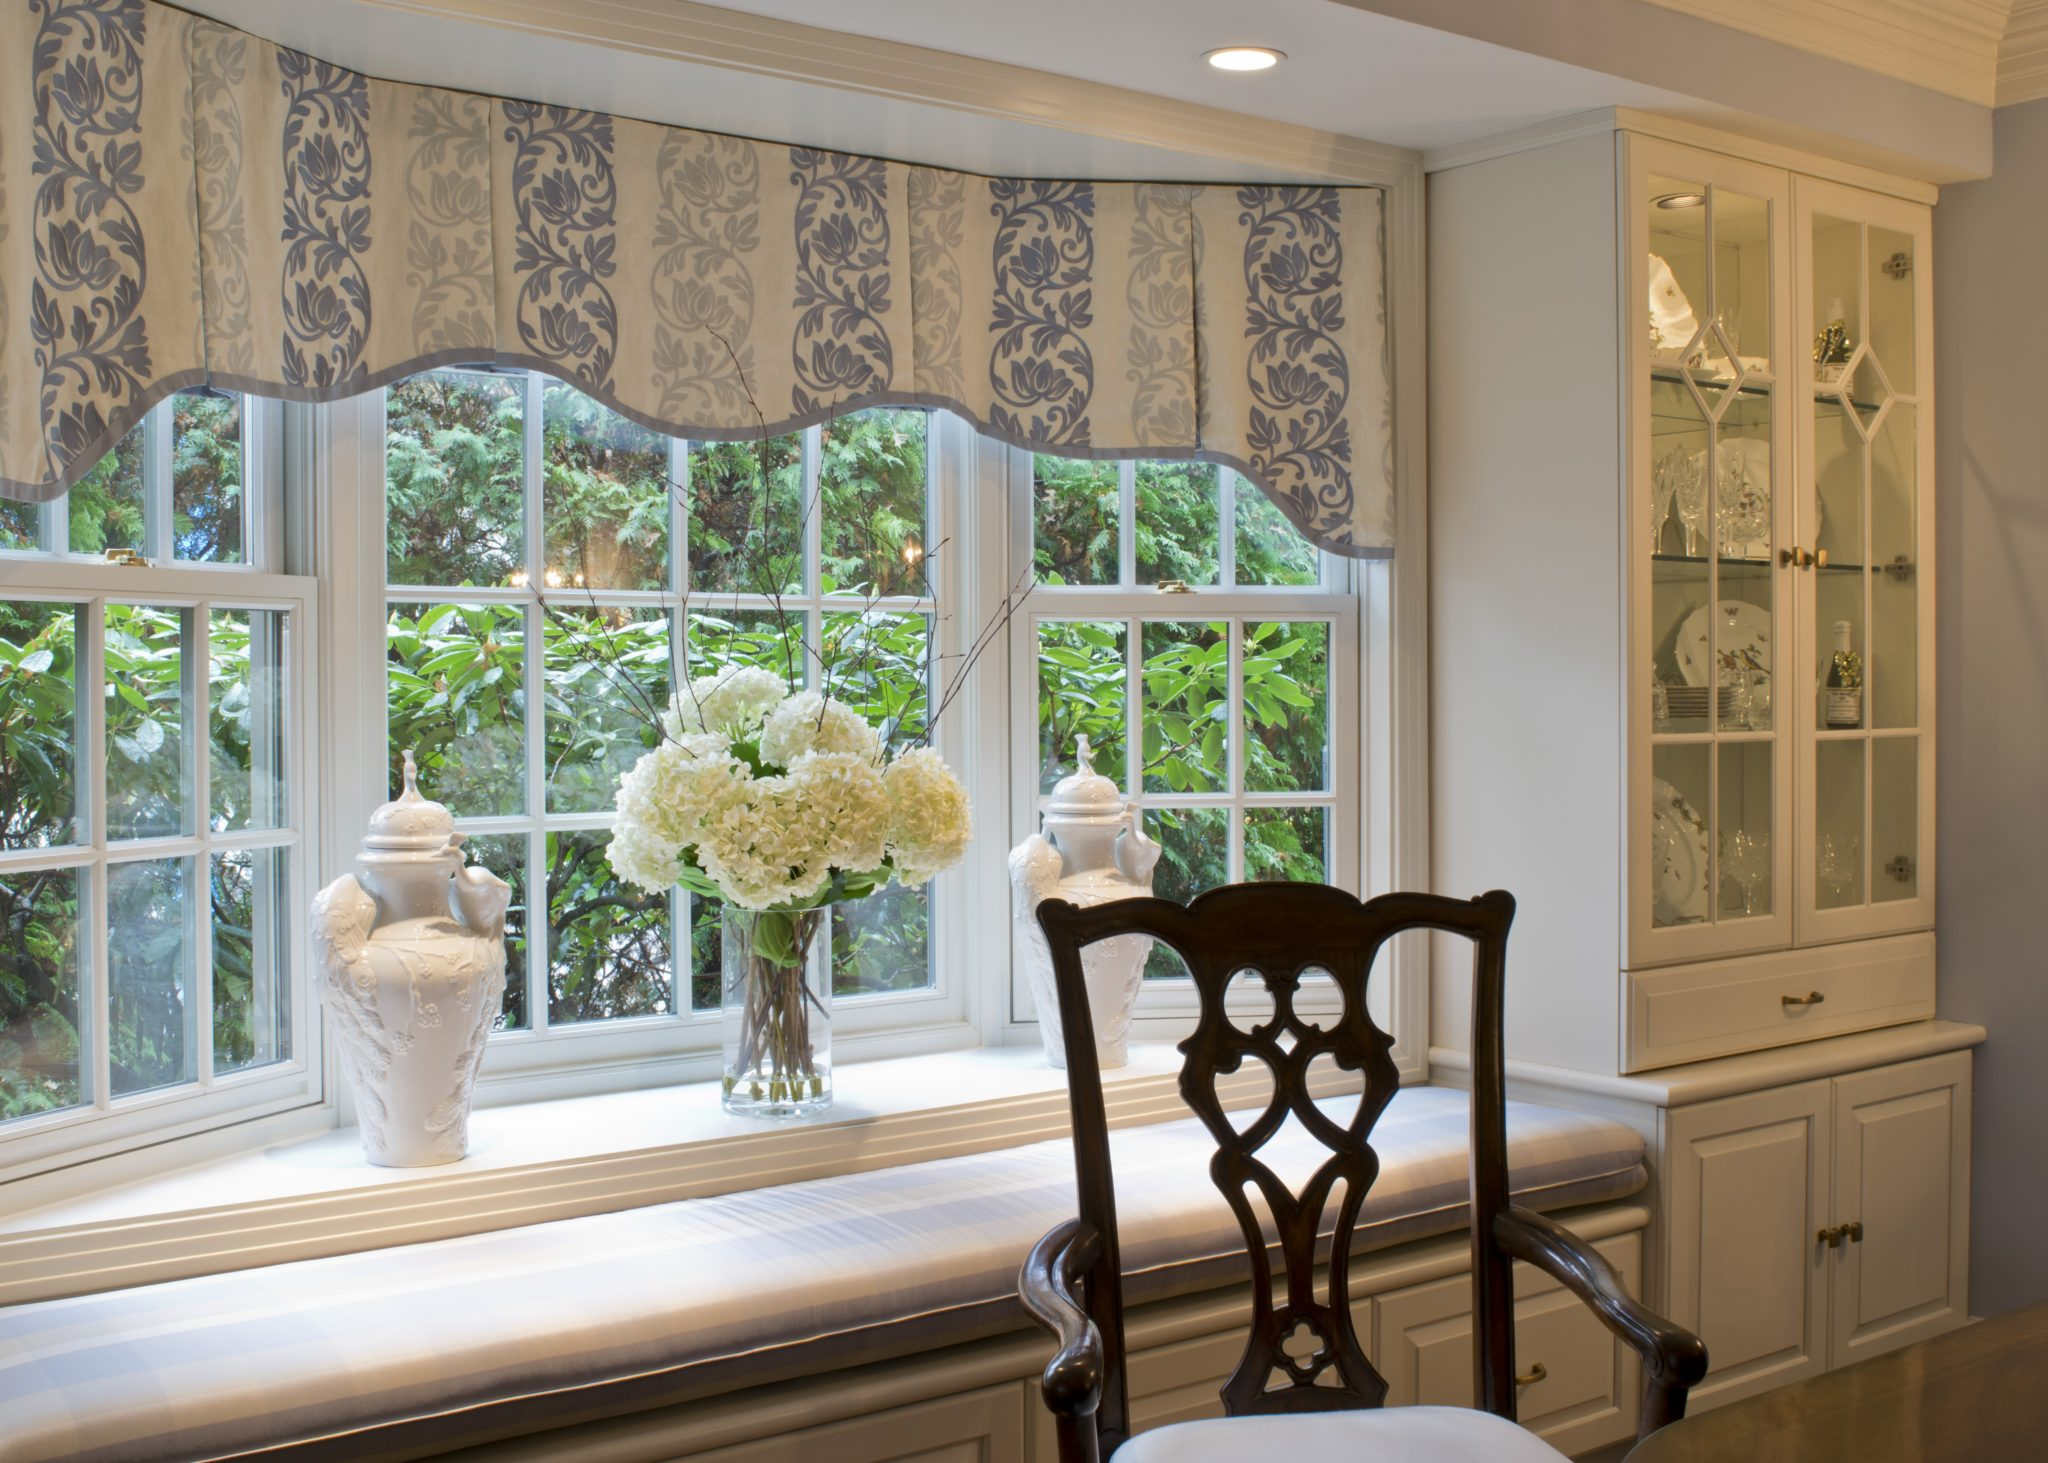 1938 Fieldstone dining room window seat with built-in china cabinets by LSM Interior Design